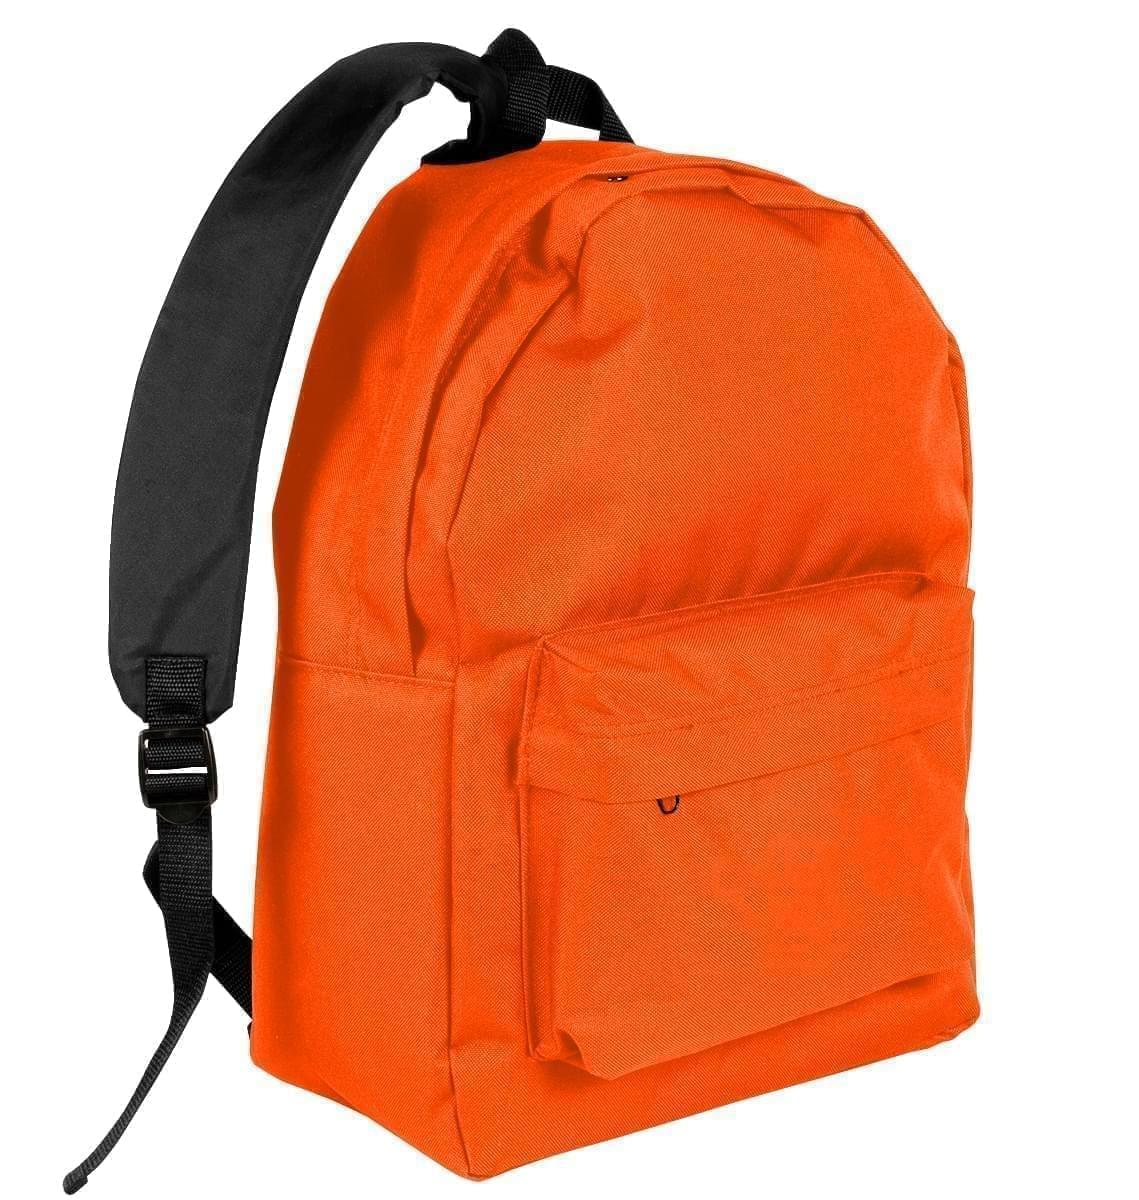 USA Made Nylon Poly Backpack Knapsacks, Orange-Black, 8960-AXR